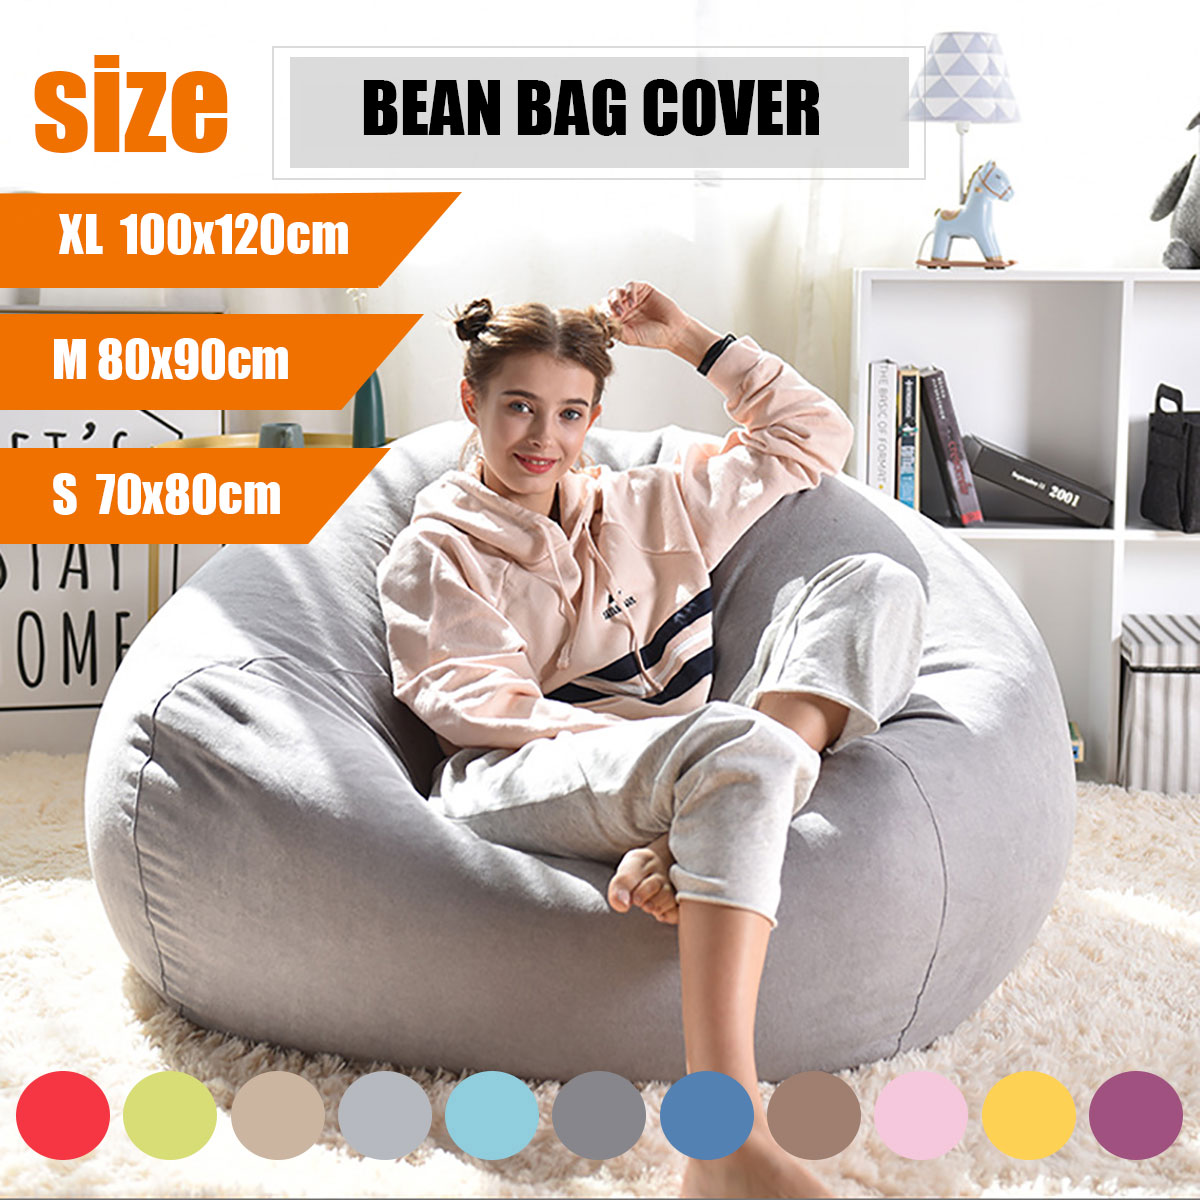 3size Lazy Sofas Cover Chairs Without Filler Linen Cloth Lounger Seat Bean Bag Pouf Puff Couch Tatami Puff Para Sala Living Room